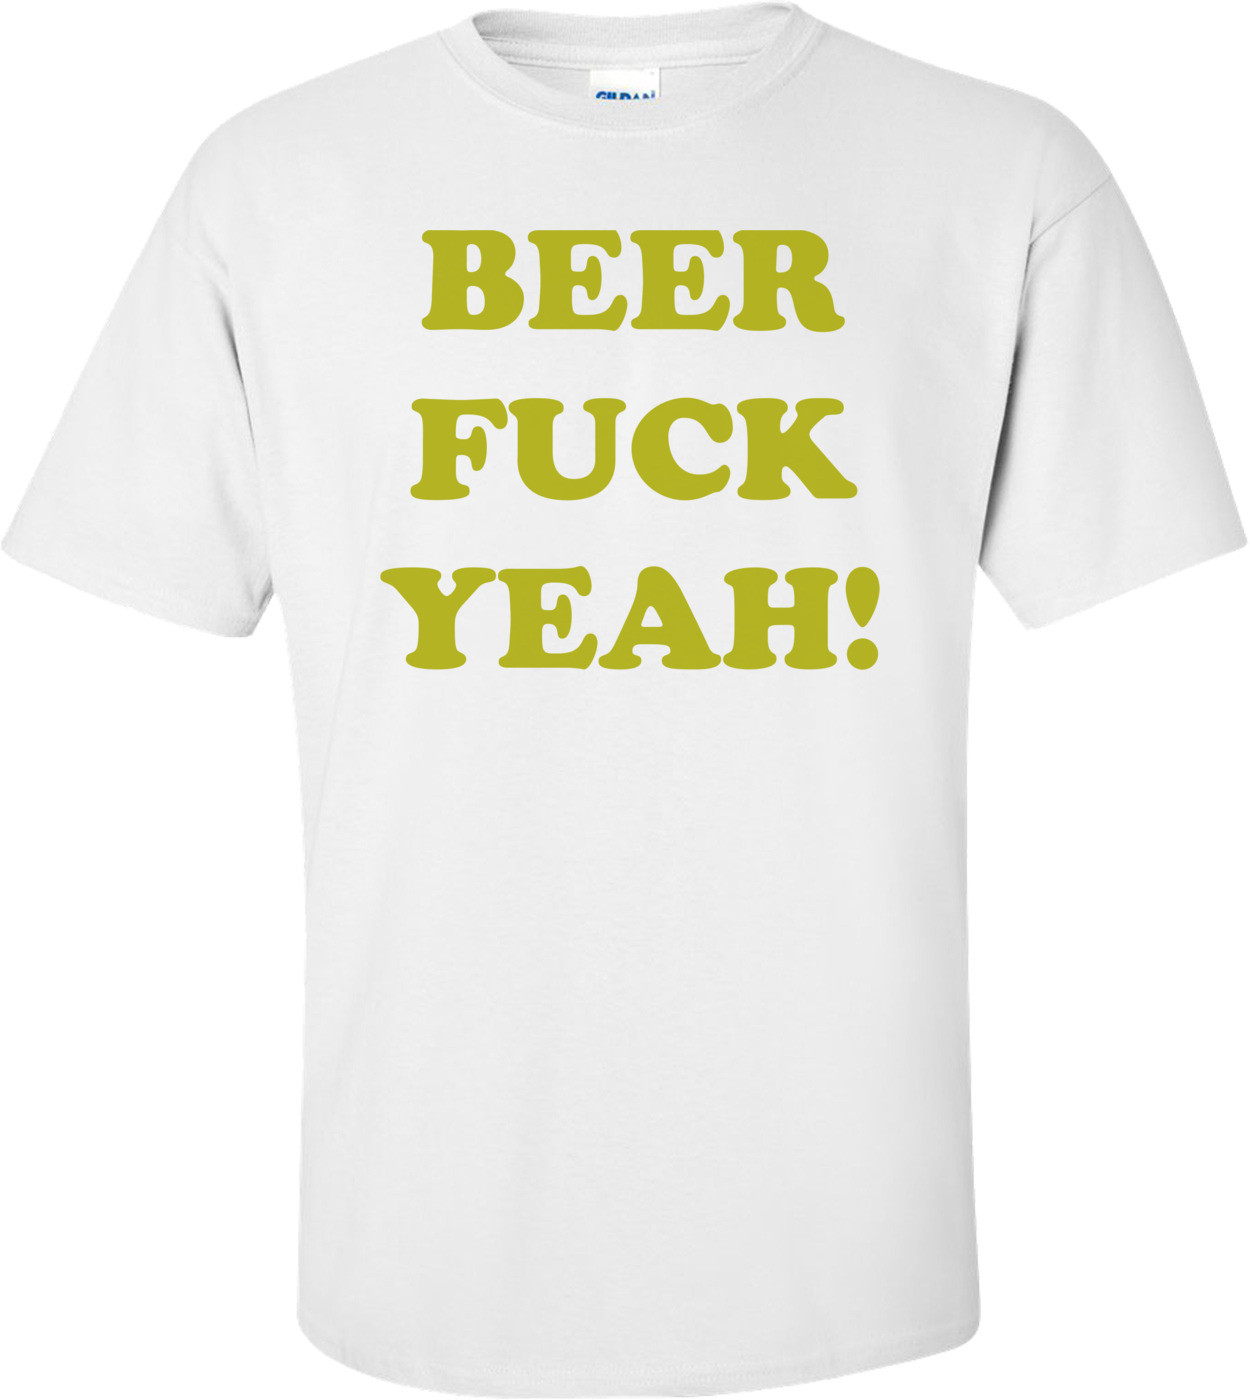 BEER FUCK YEAH! Shirt